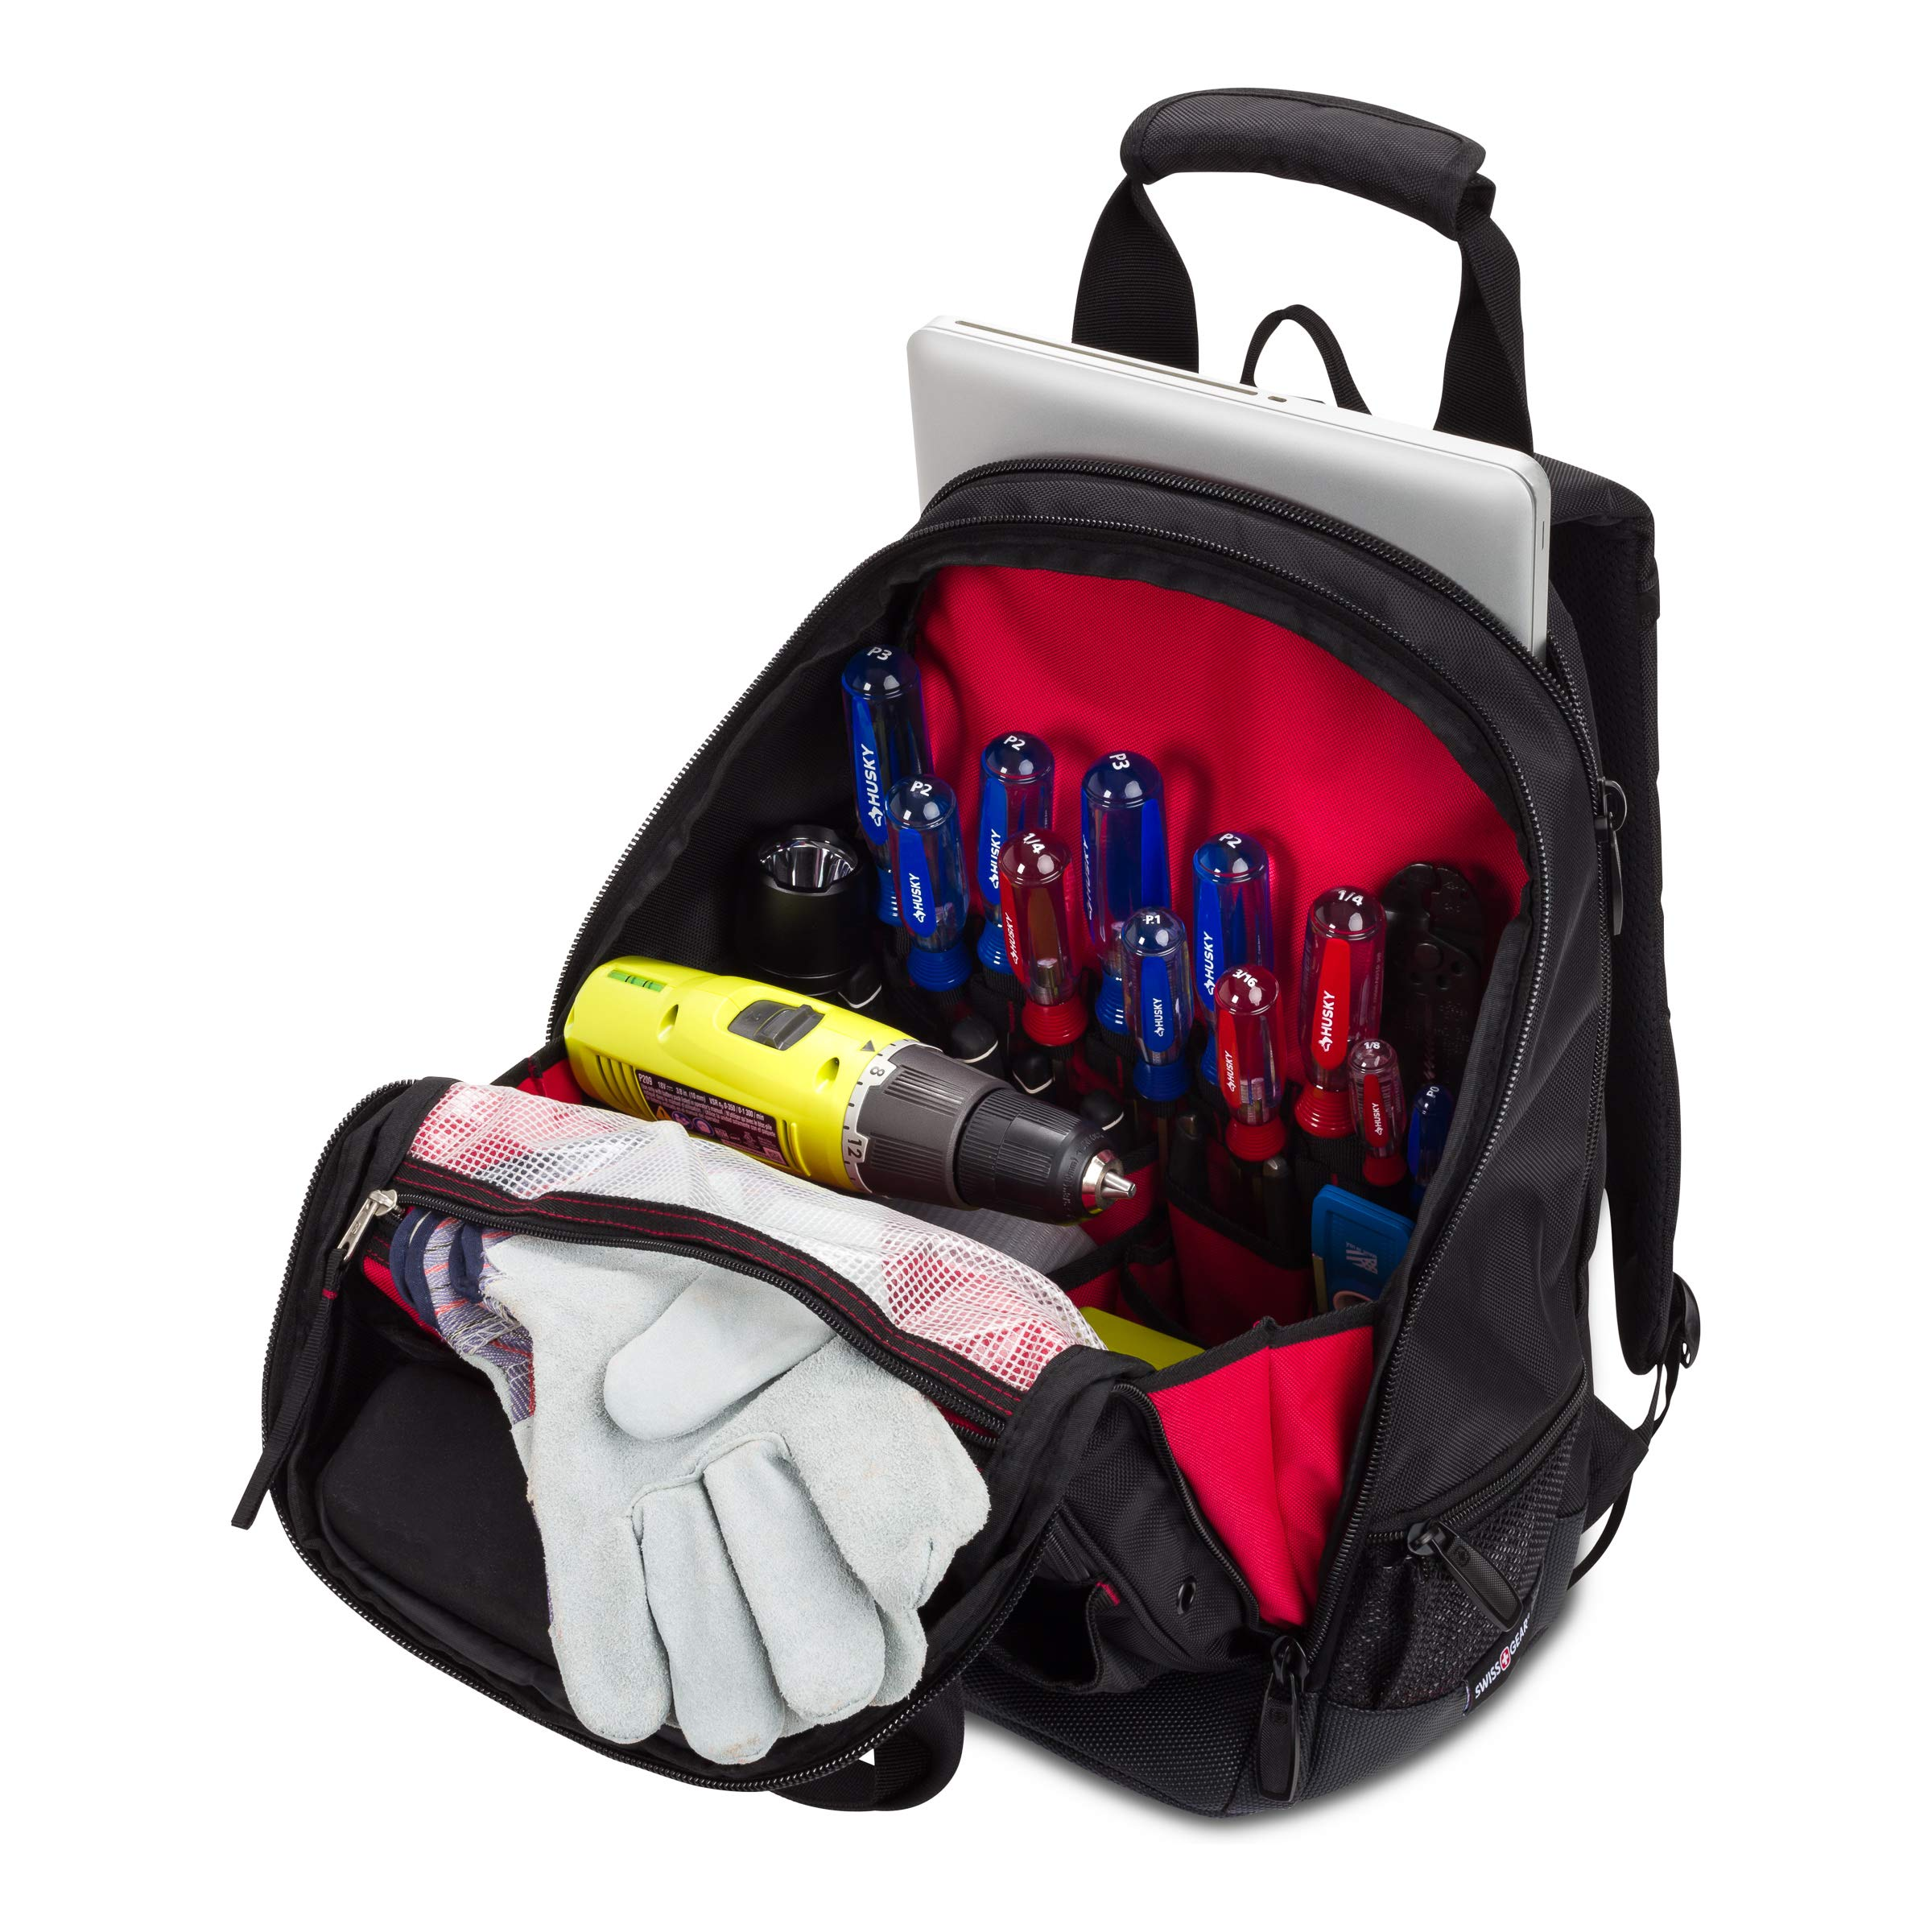 SWISSGEAR 2767 Large Durable Work Pack Tool Backpack With Padded Laptop Compartment | Tool Storage, Part Organization, Wet/Dry Pocket - Black by SwissGear (Image #8)